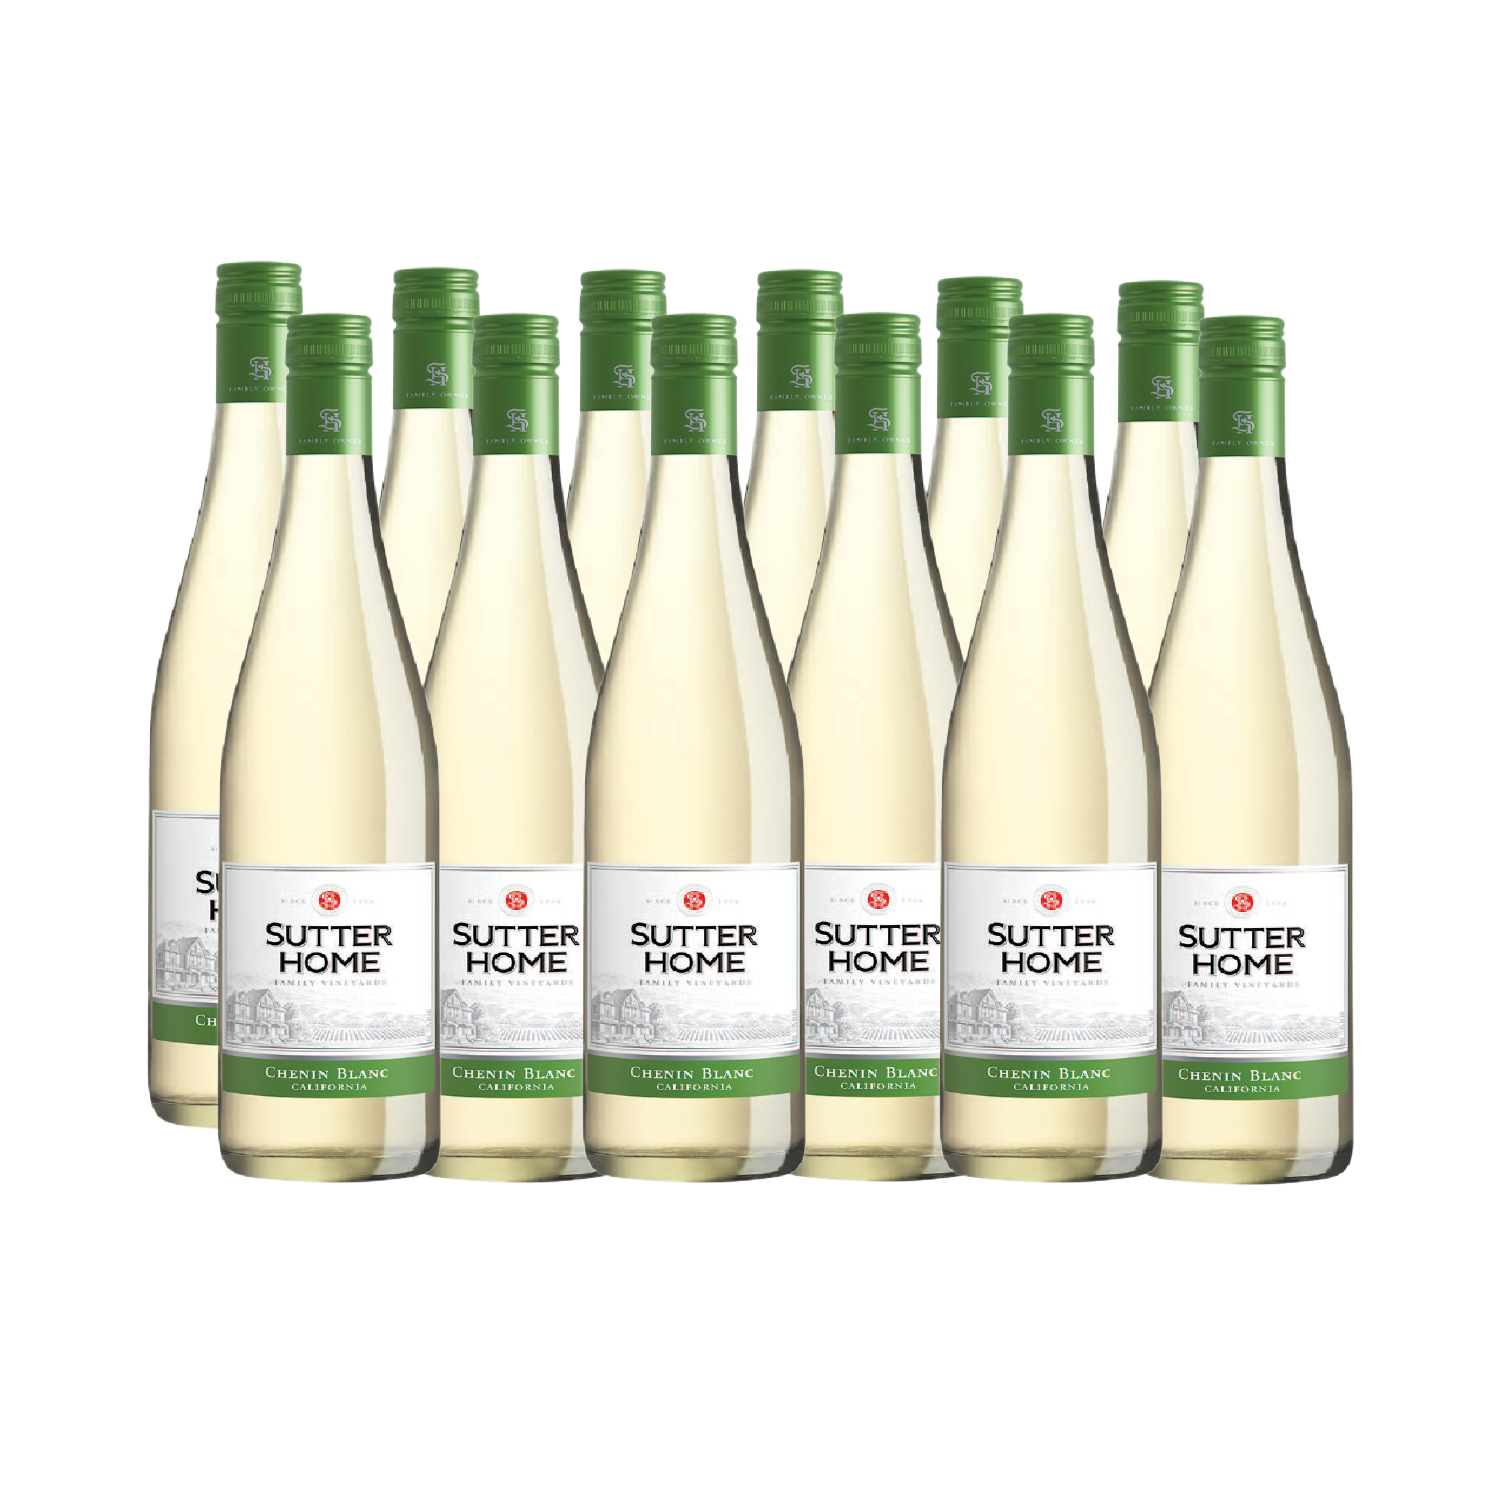 SUTTER HOME CHENIN BLANC 750ML (12 + 2 BOTTLES FREE)